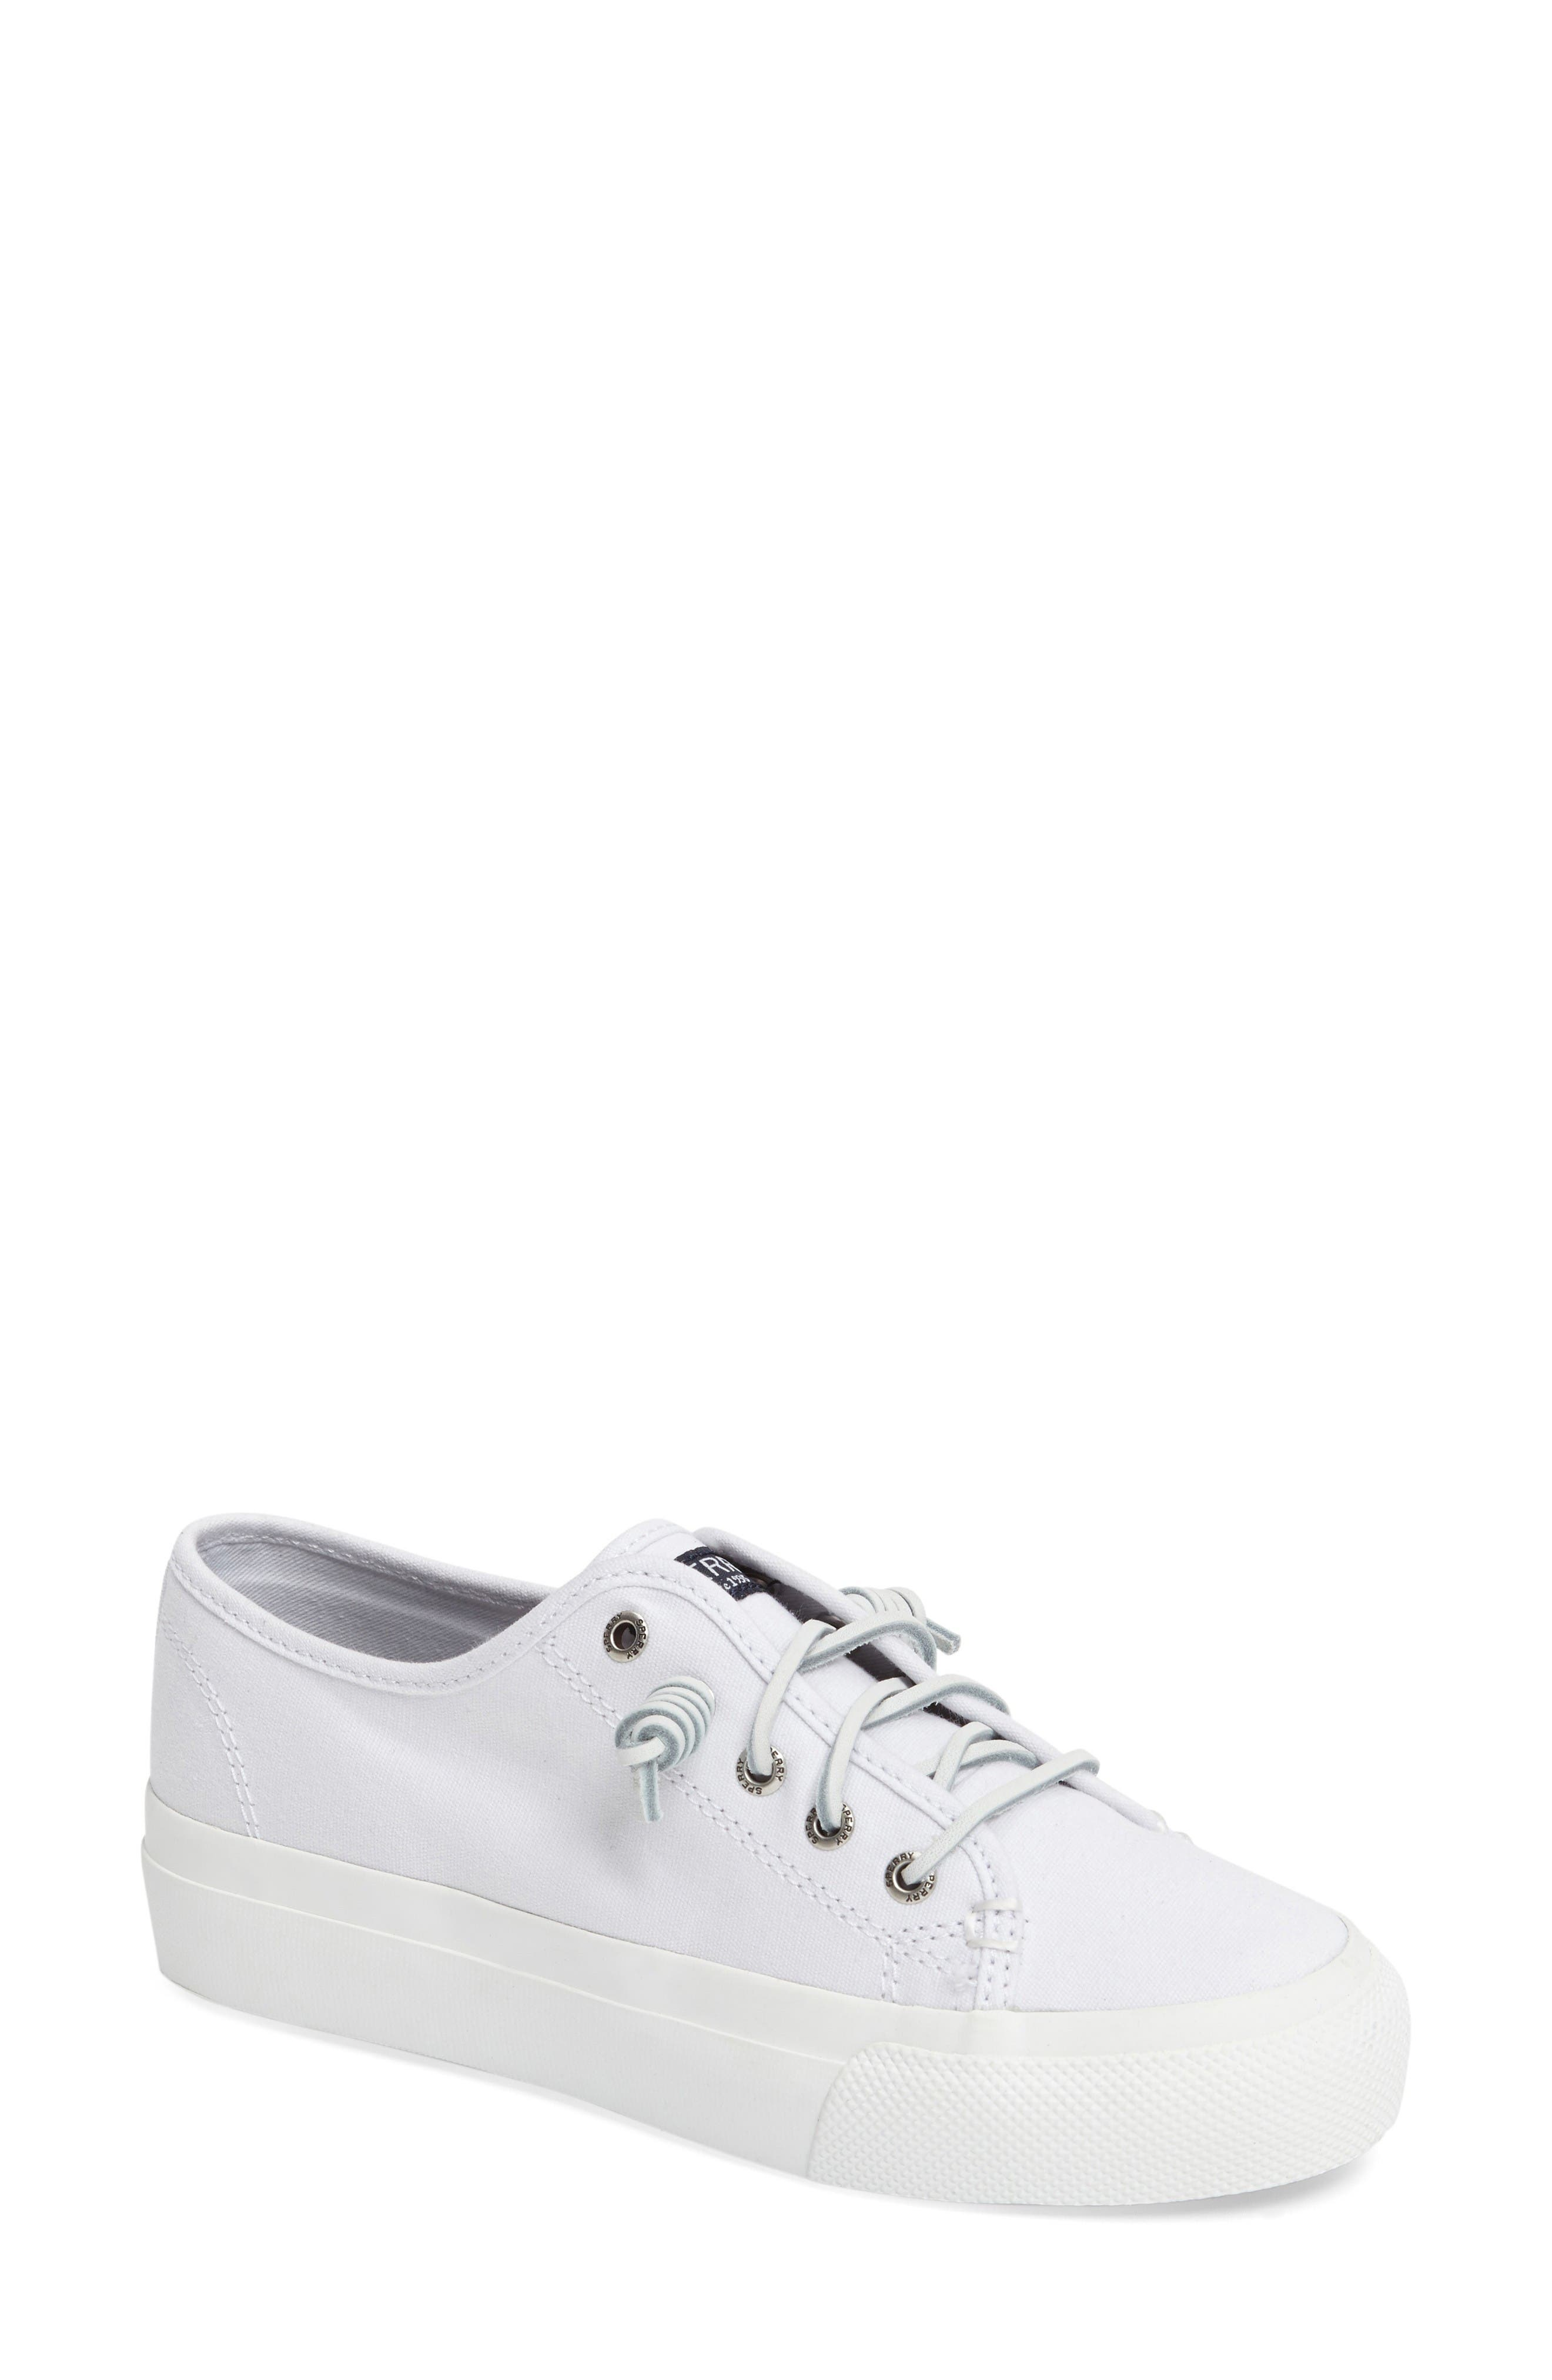 Sperry Sky Sail Platform Sneaker (Women)